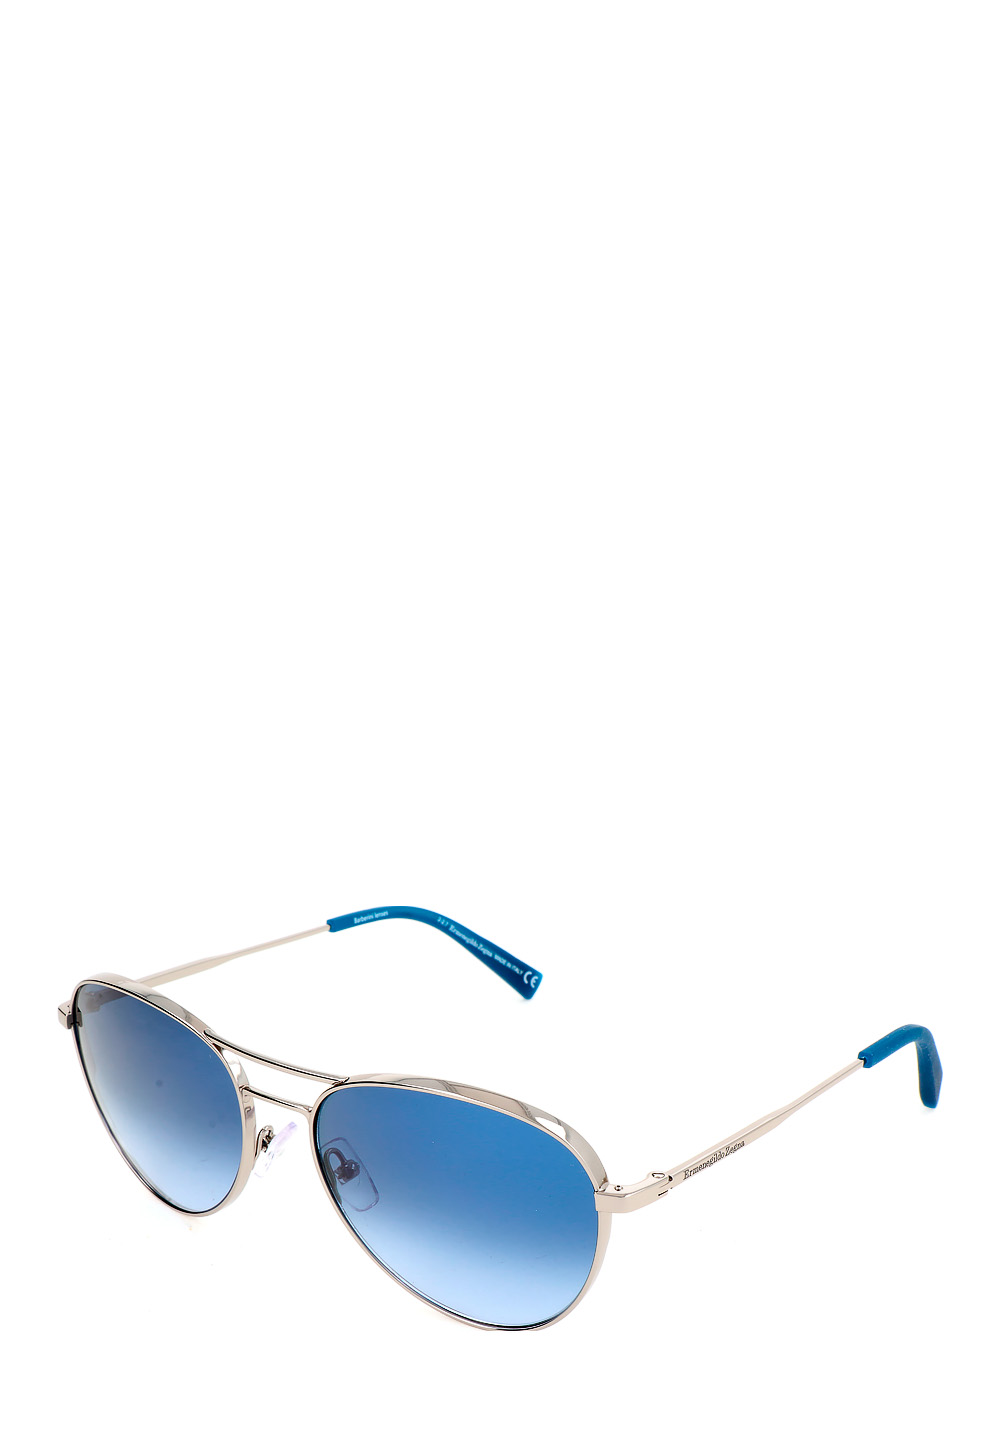 Ermenegildo Sonnenbrille Ez0098, Uv400, shiny light ruthenium bunt